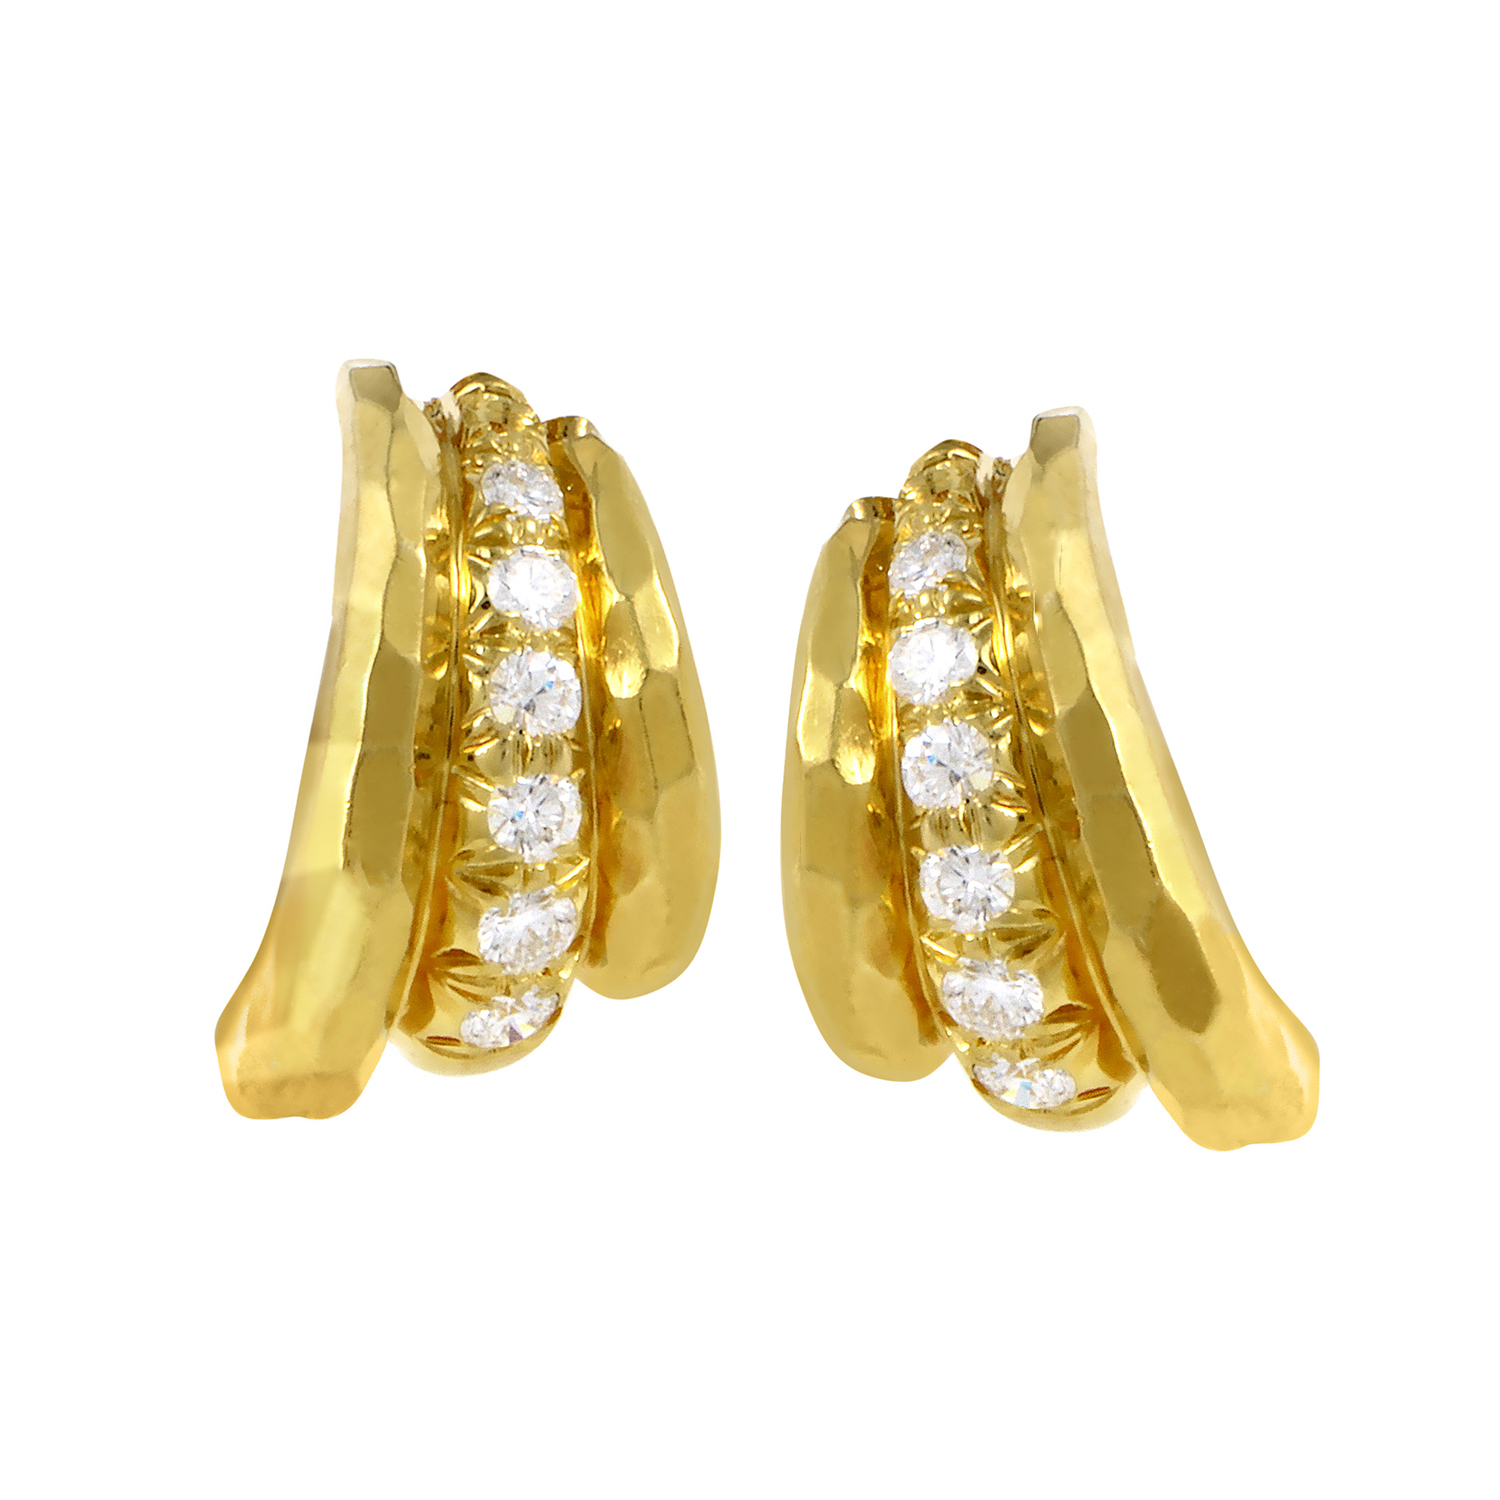 Henry Dunay Hammered 18K Yellow Gold Diamond Earrings